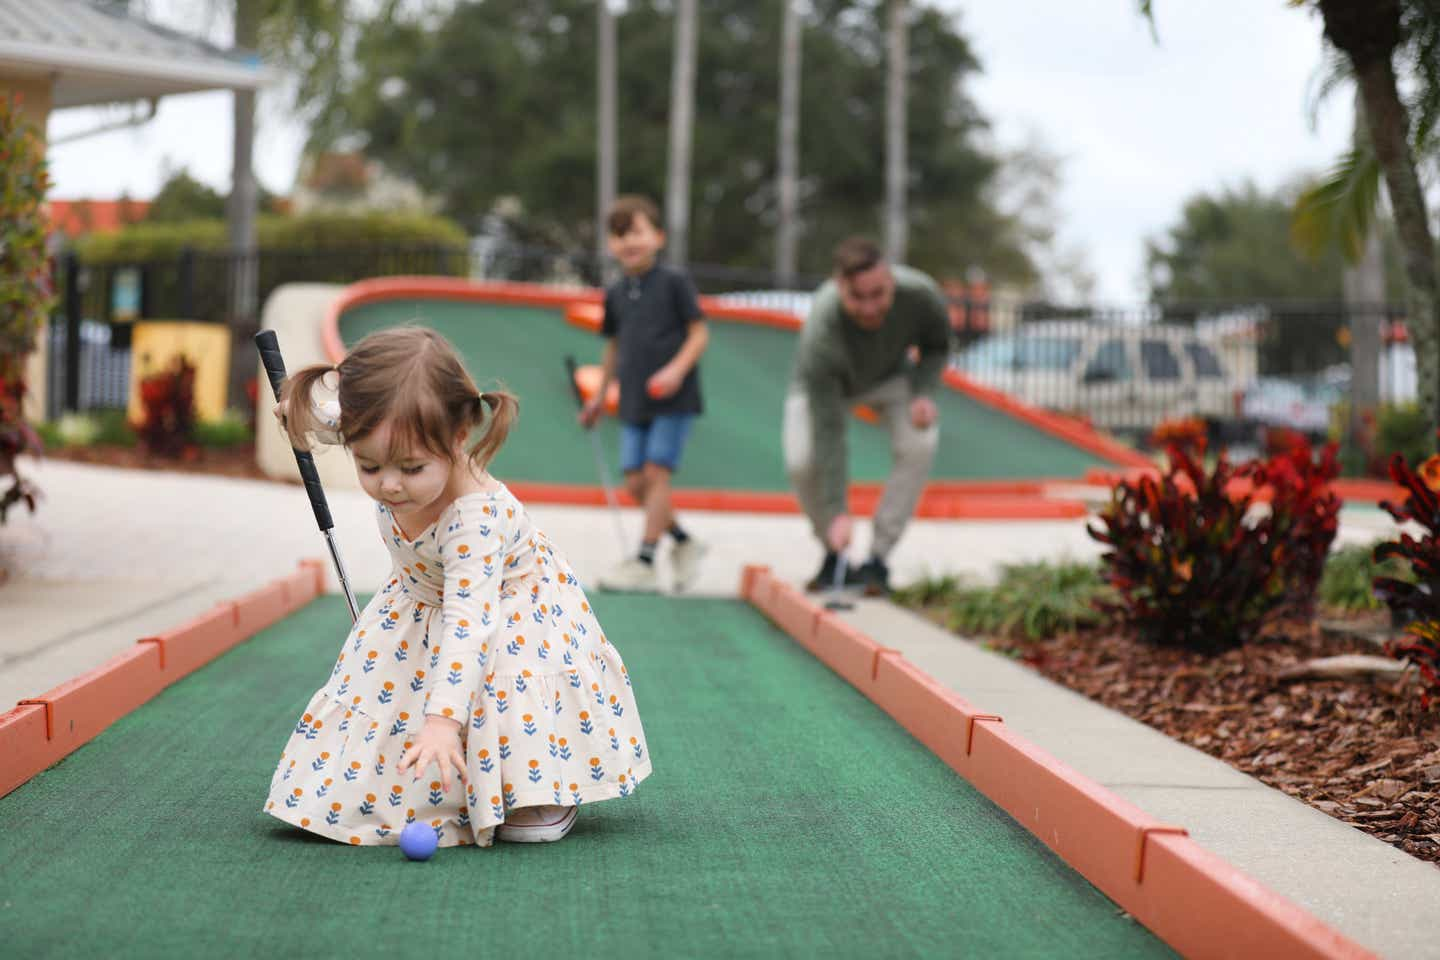 Mia St Clair's daughter picking up a blue golf ball at the mini golf course